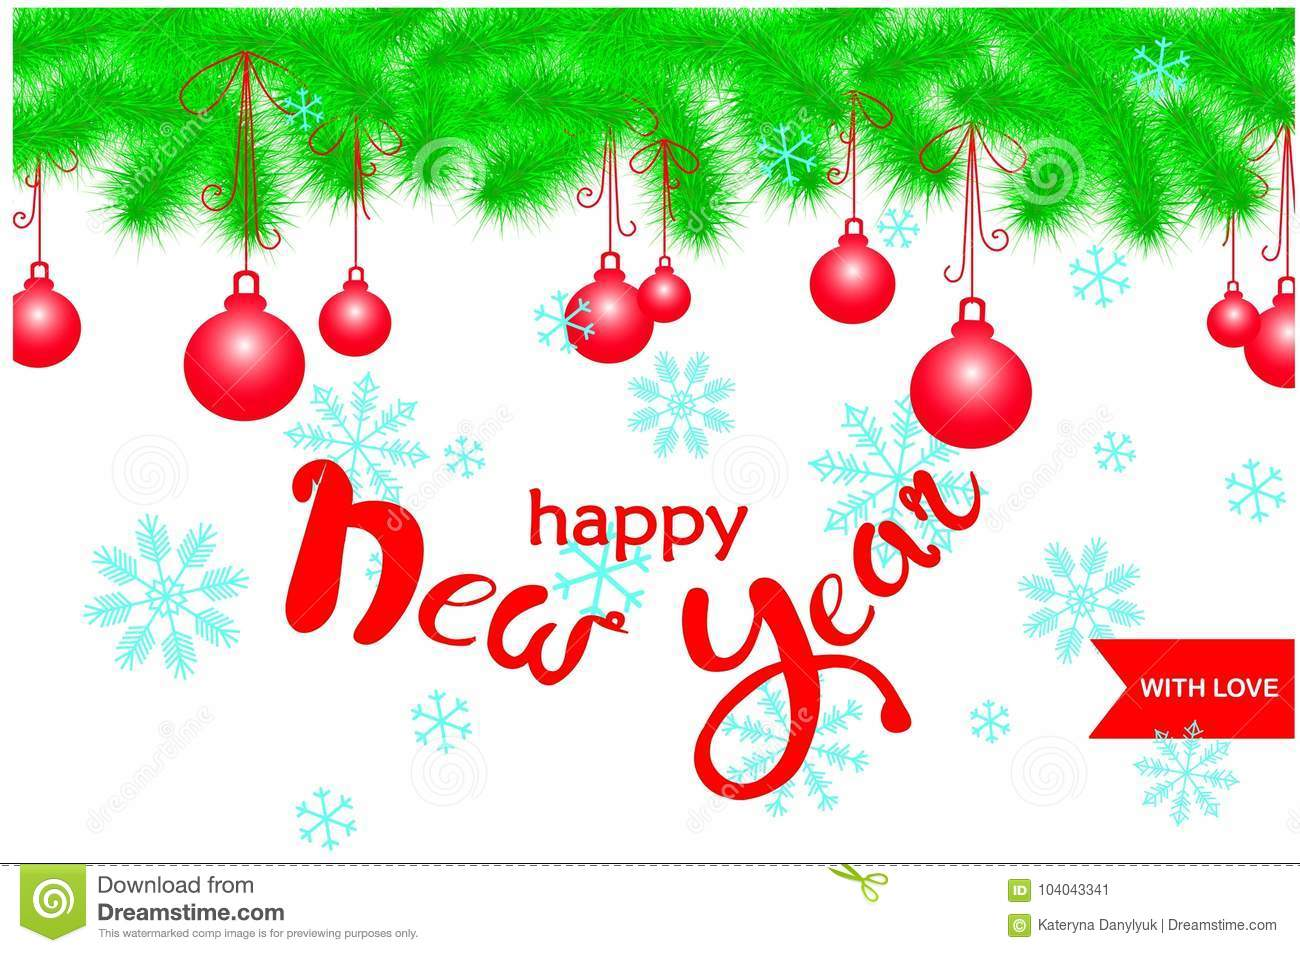 congratulation card with green christmas tree garland on top red balls lettering happy new year with love blue snowflake on white stock vector